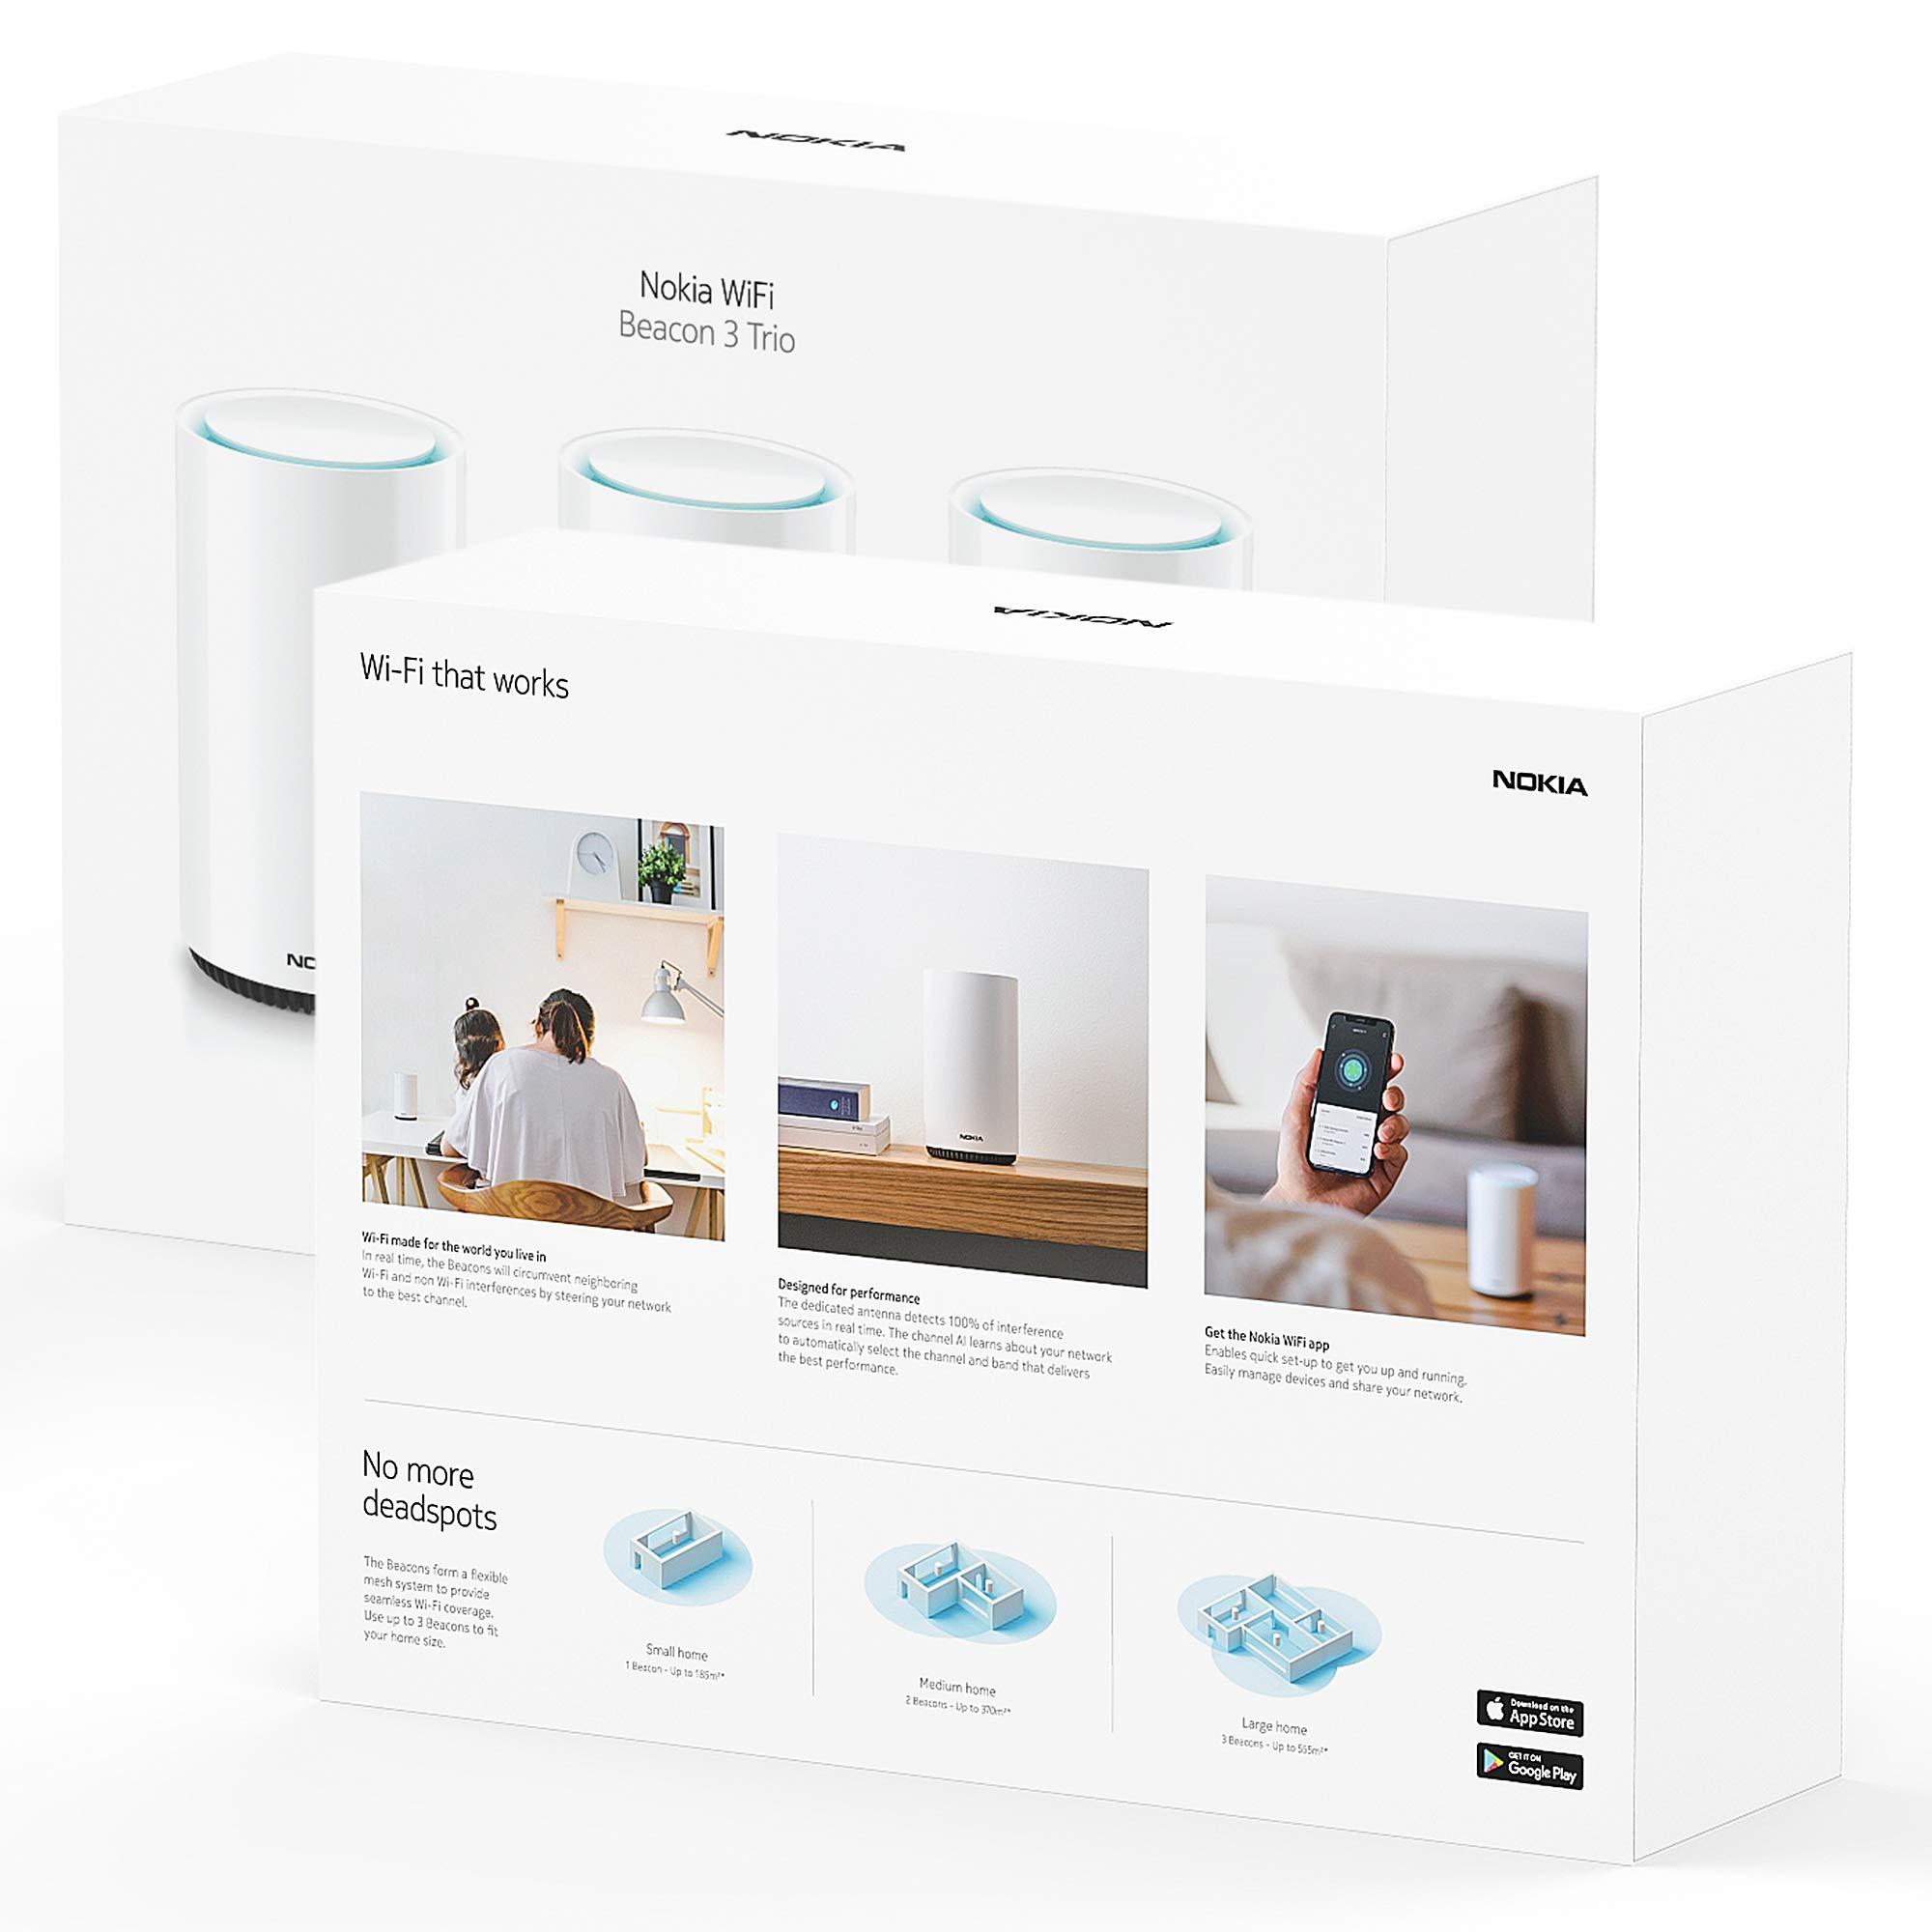 Nokia WiFi Beacon 3 Mesh Router System - Intelligent, Seamless Whole Home WiFi Coverage Extender - Connect Your Whole House WiFi Network, Ultra Fast Self-Healing Mesh Router System - Trio (3-Pack) by Nokia